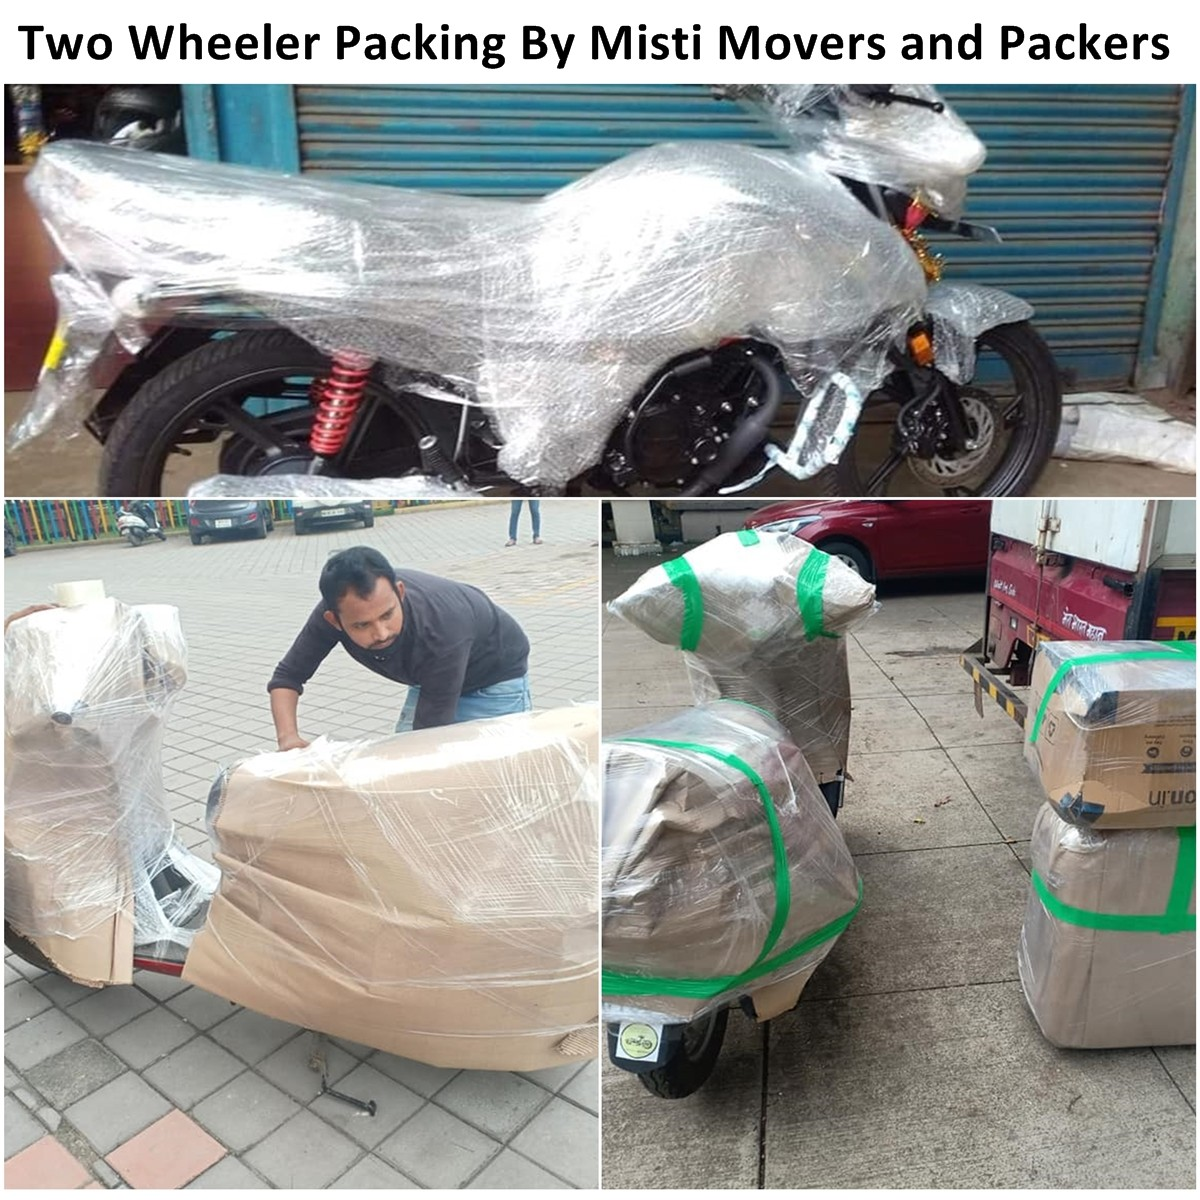 Misti Movers and Packers